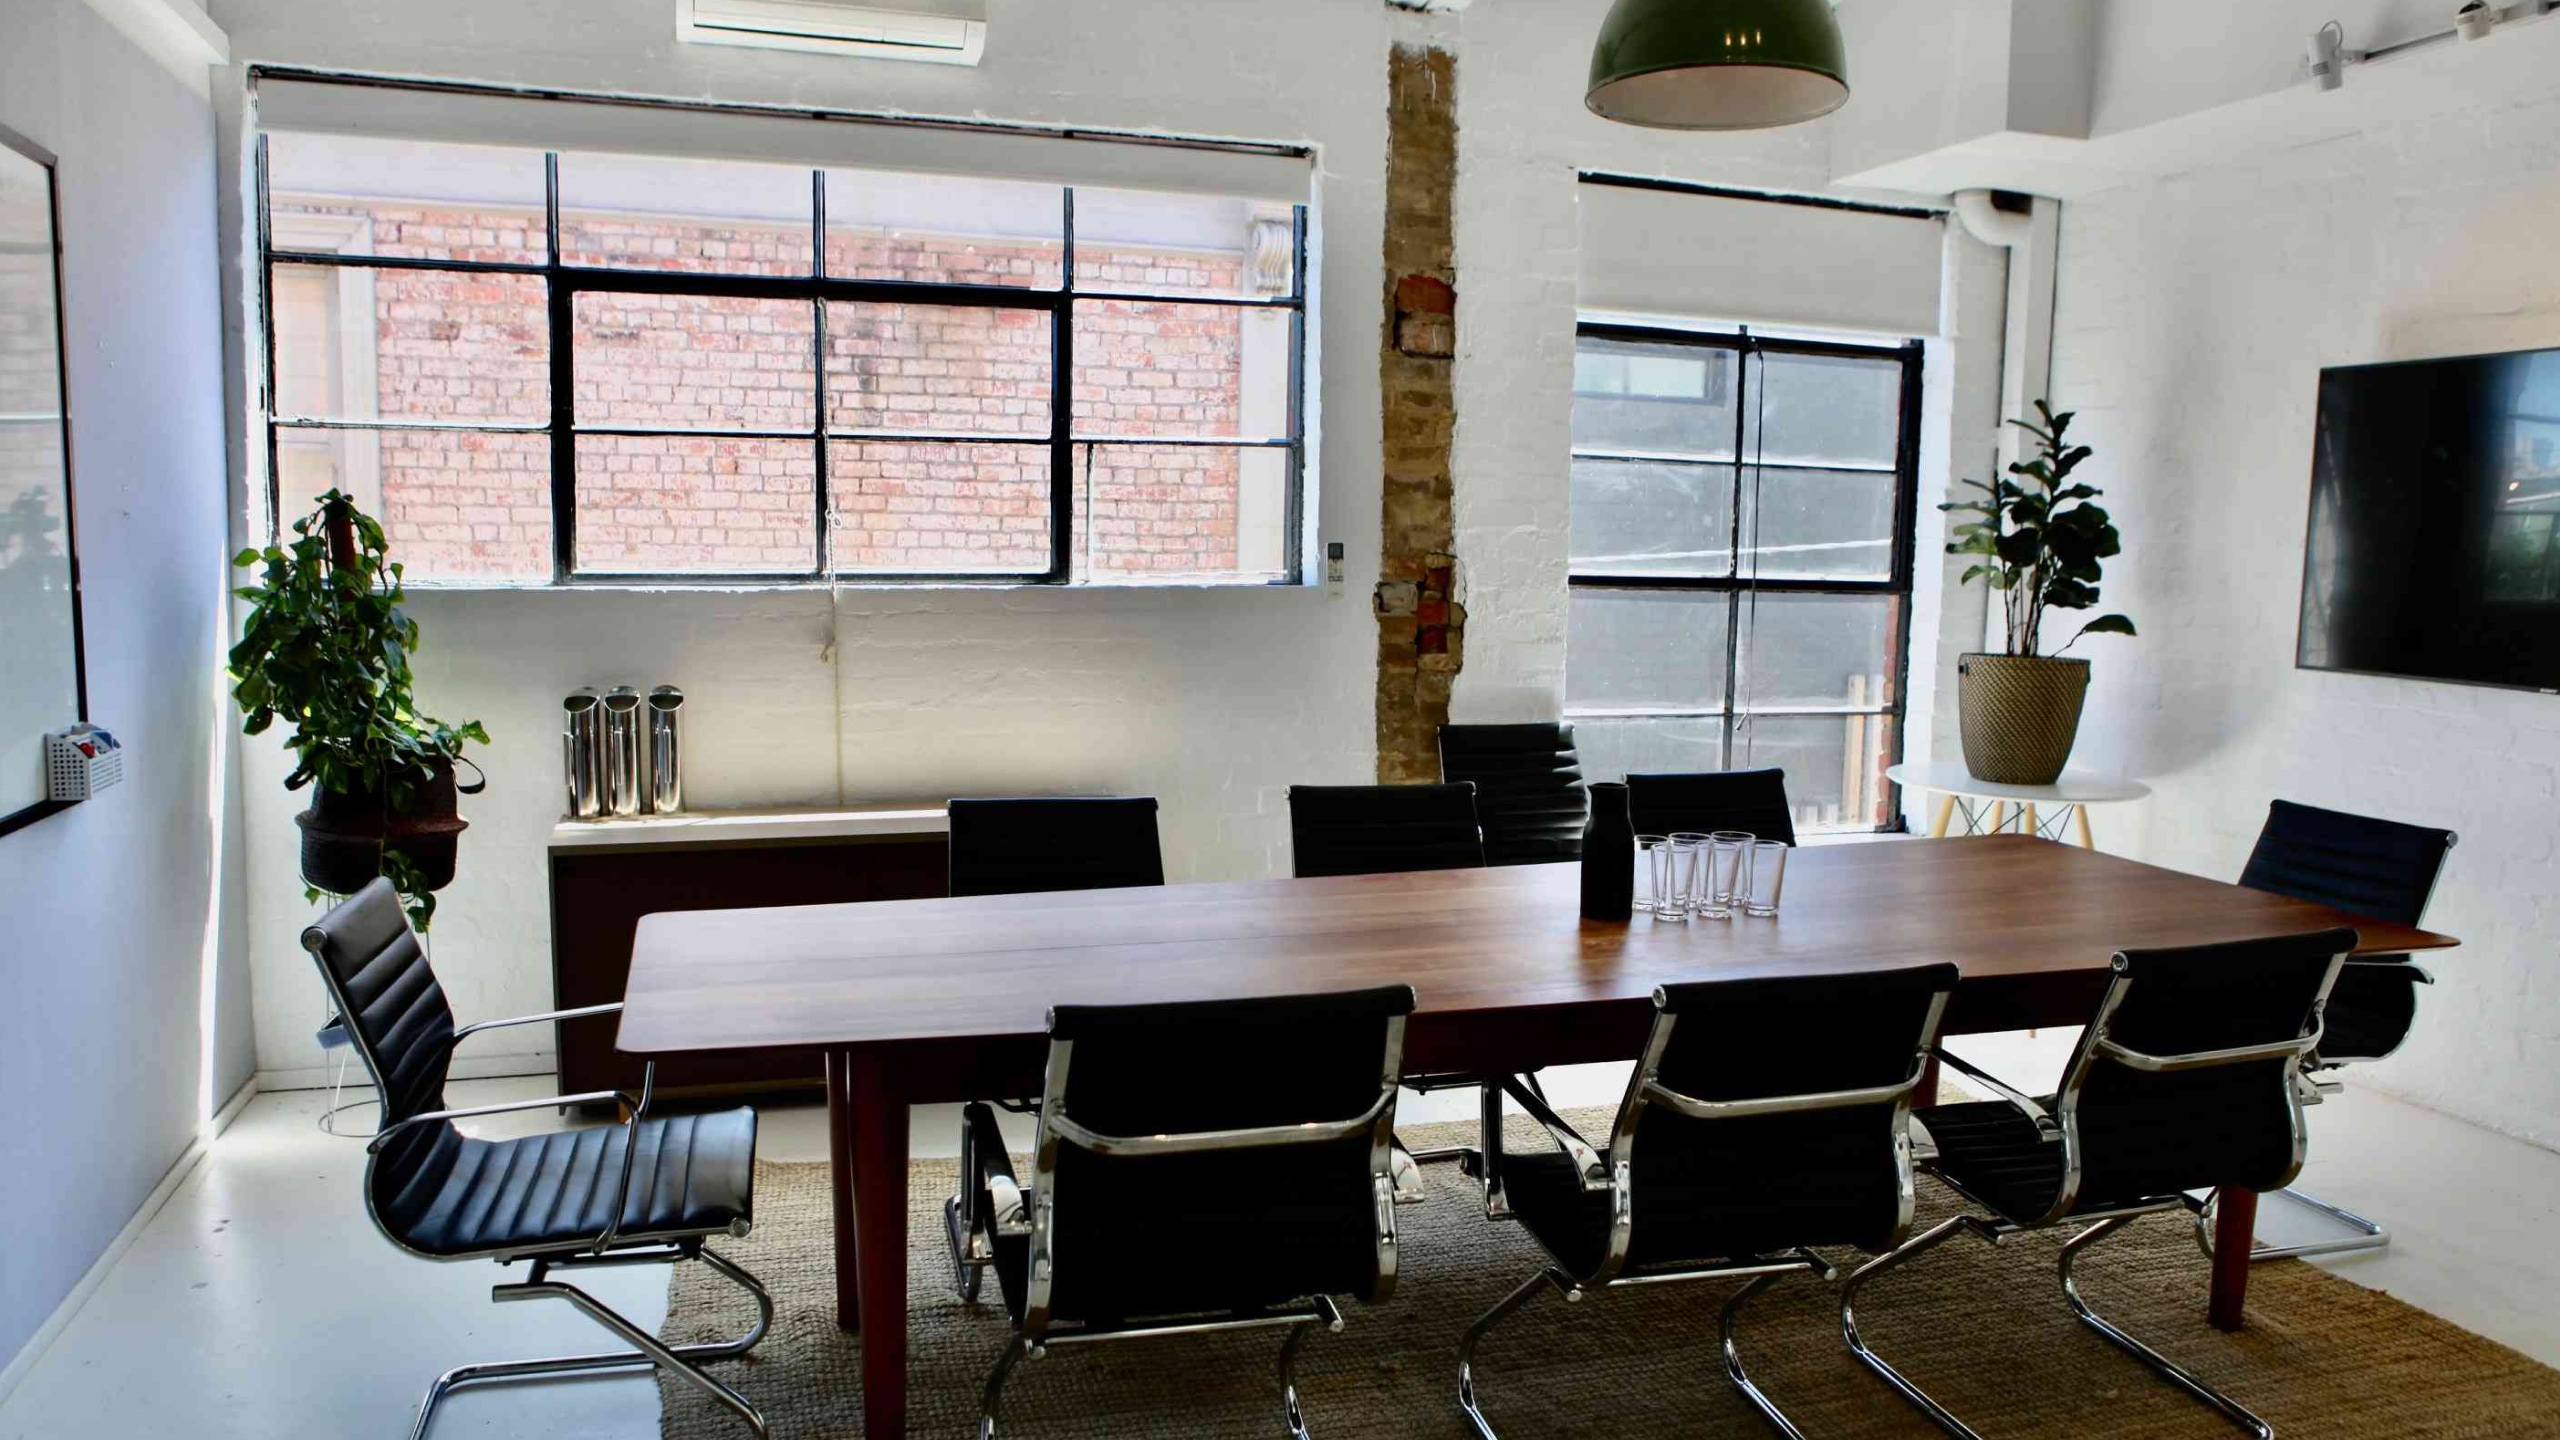 The spacious private board room, filled with natural light. The room seats 10 people and has a TV with Apple TV and HDMI in the background.